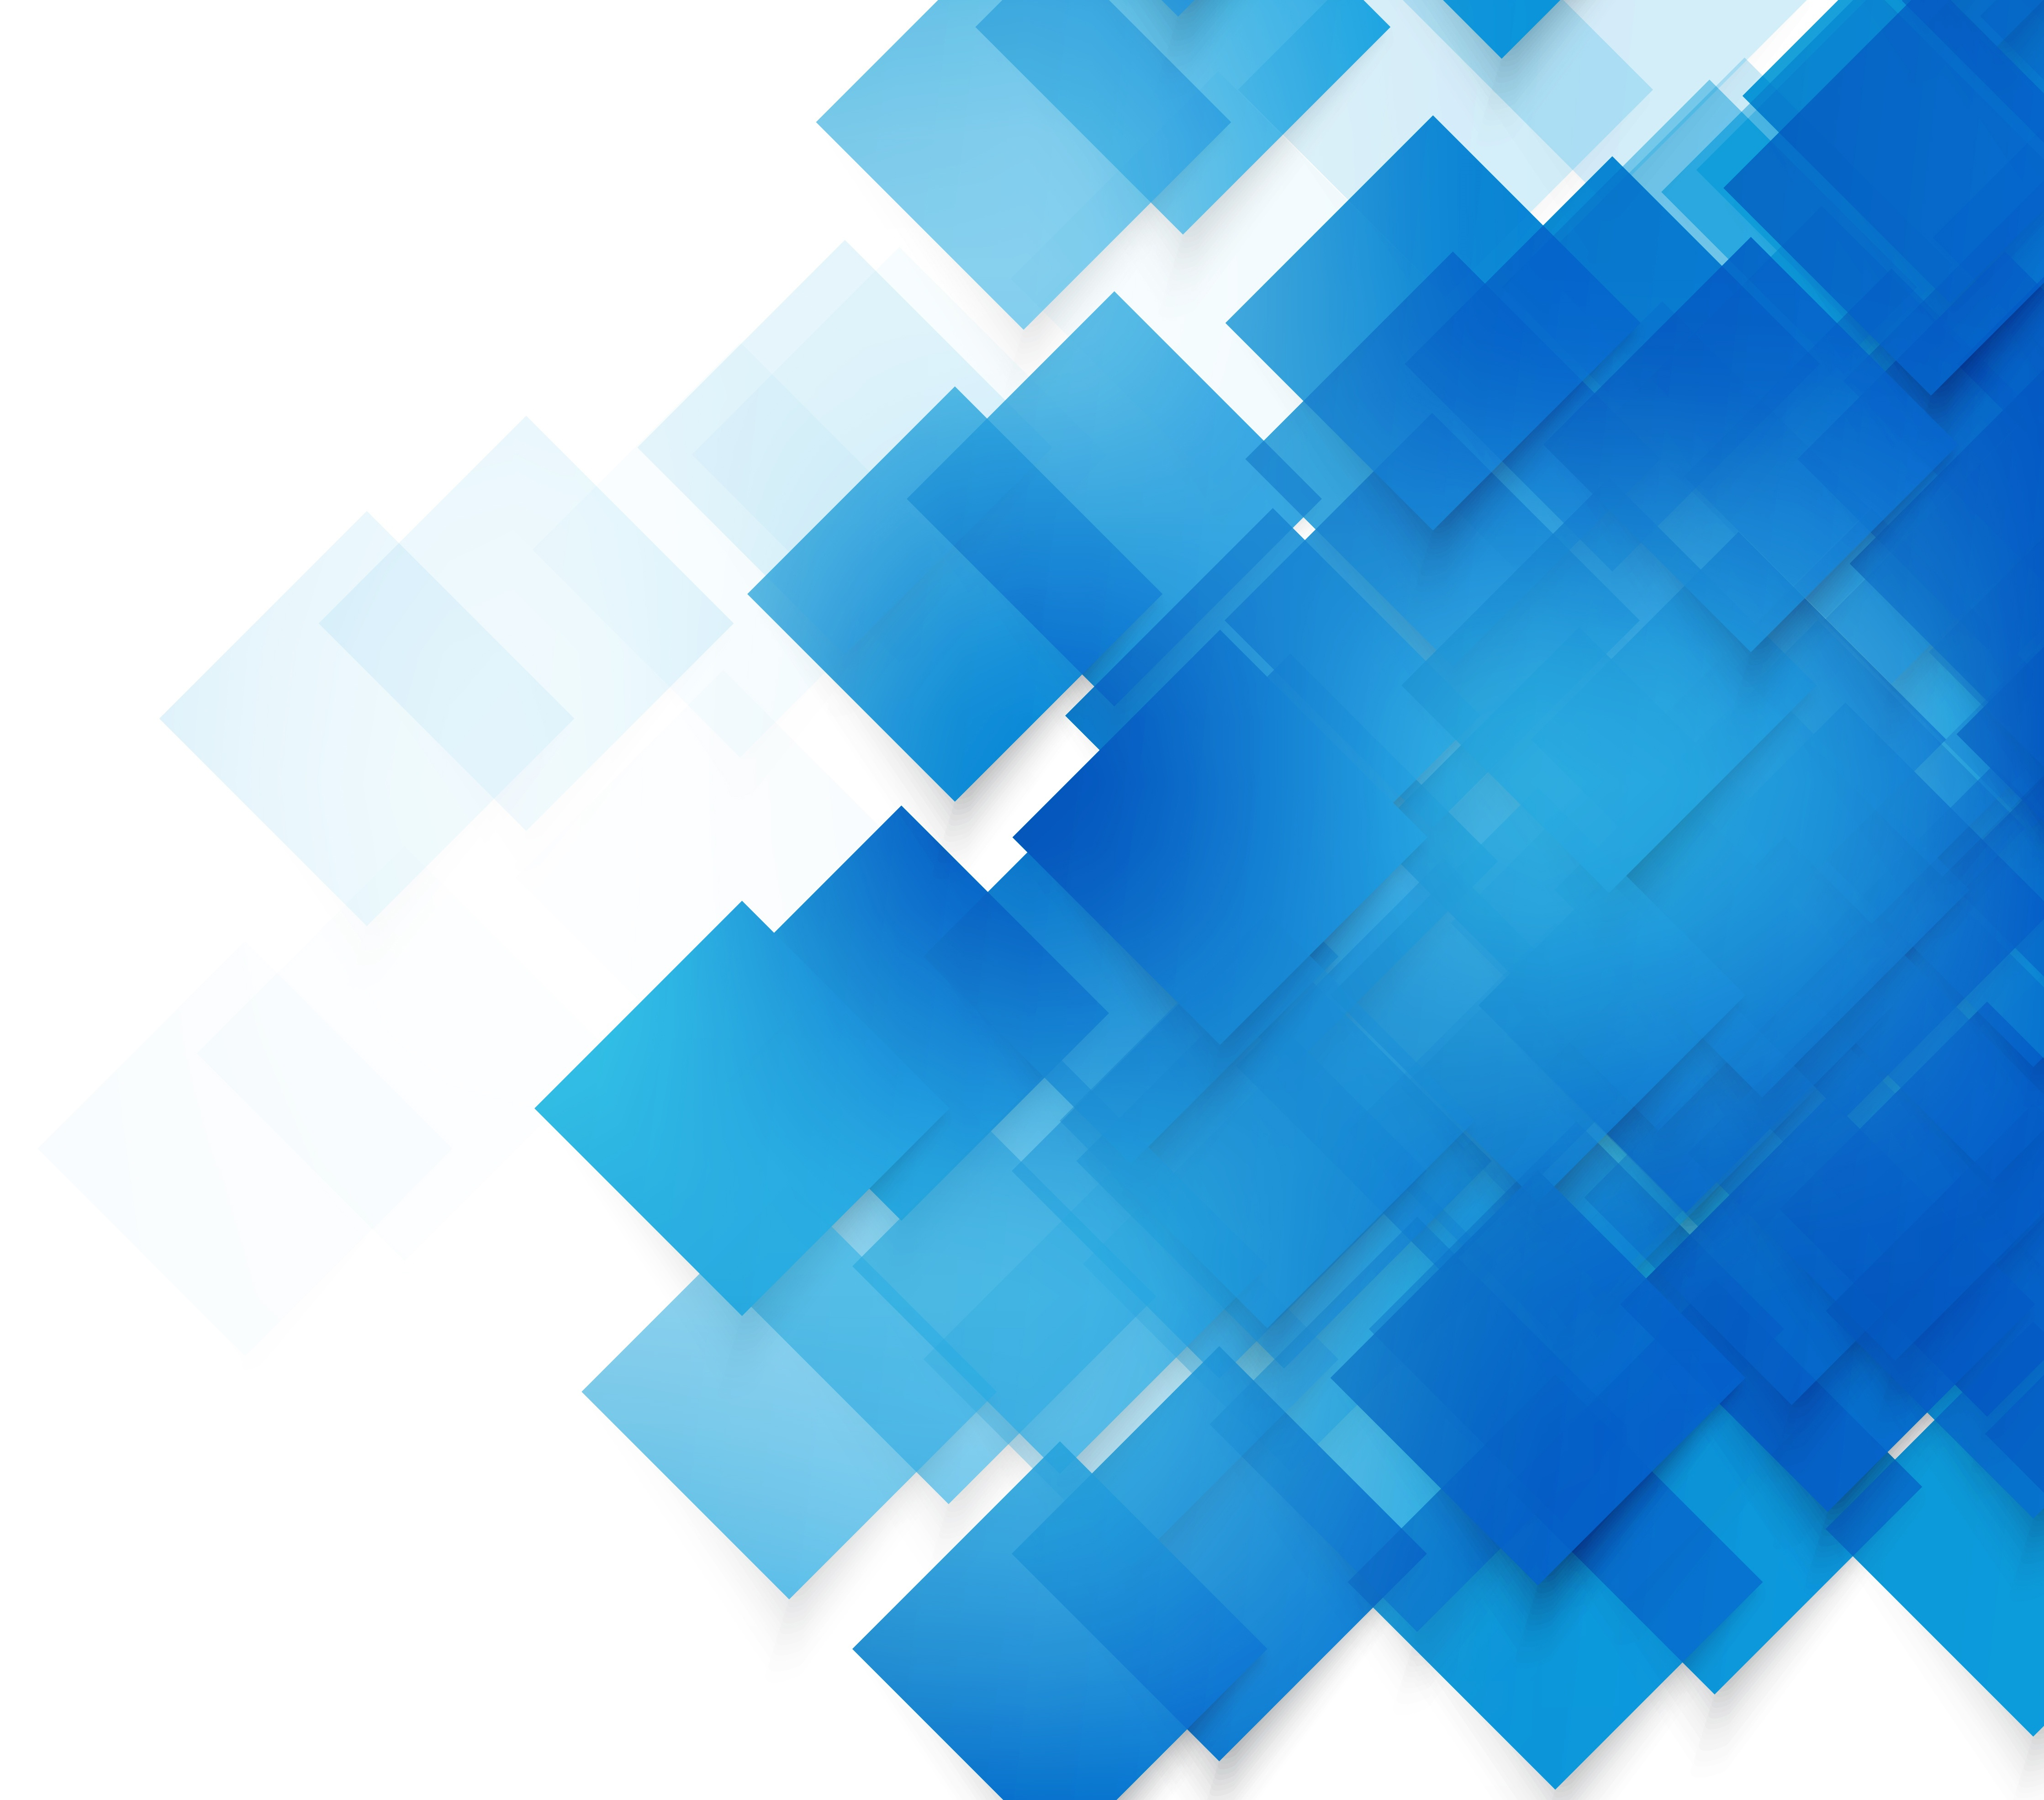 Abstract Blue Texture 4k, HD Abstract, 4k Wallpapers ...